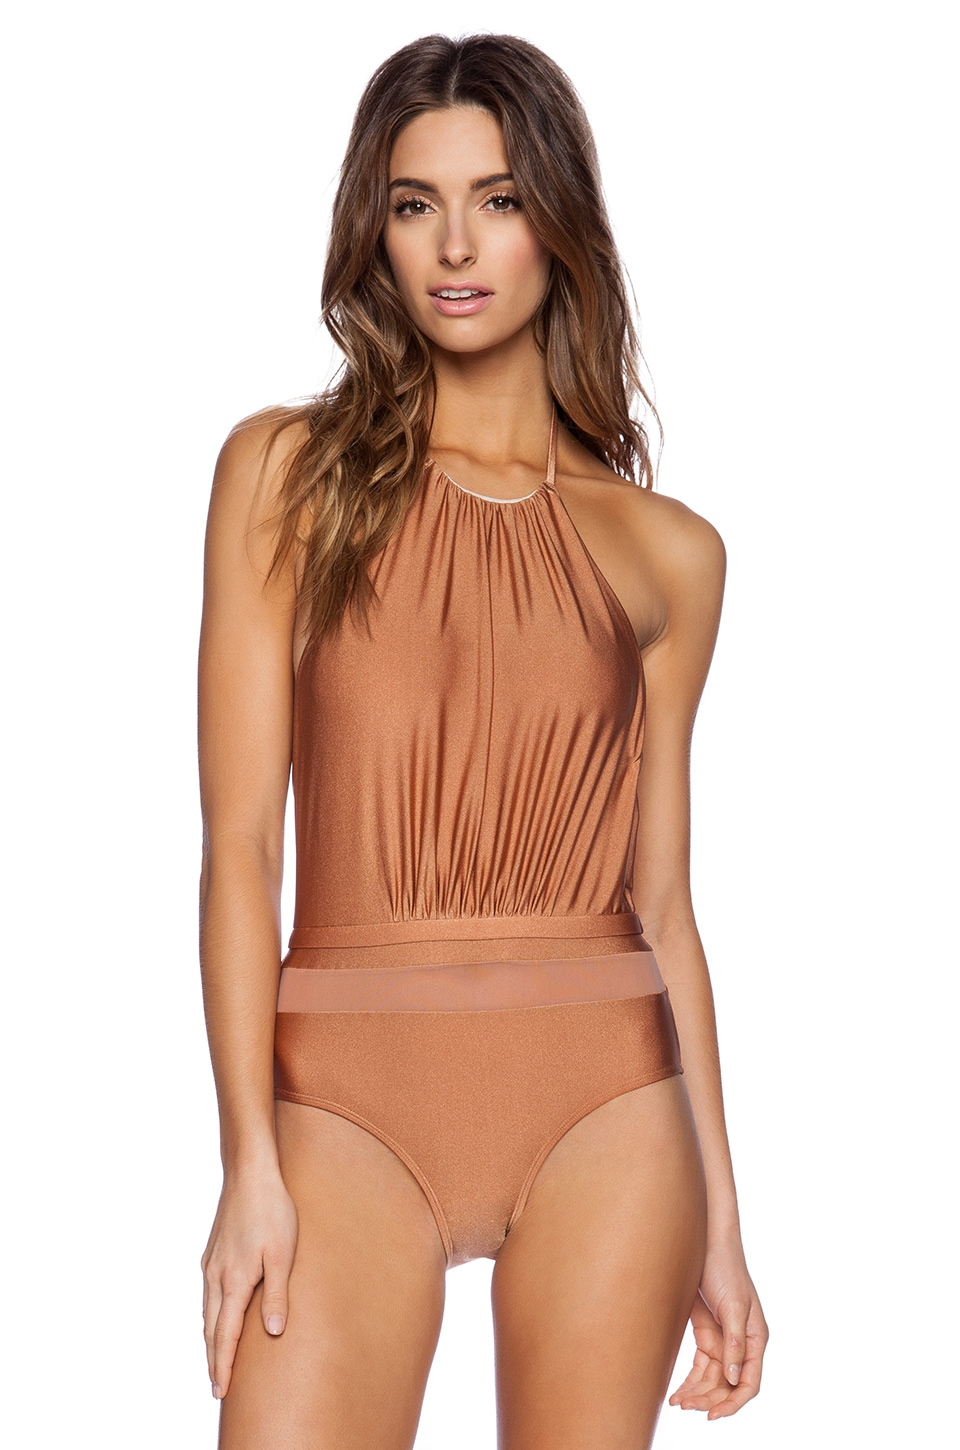 6 SHORE ROAD Frida's One Piece in Shimmer Copper